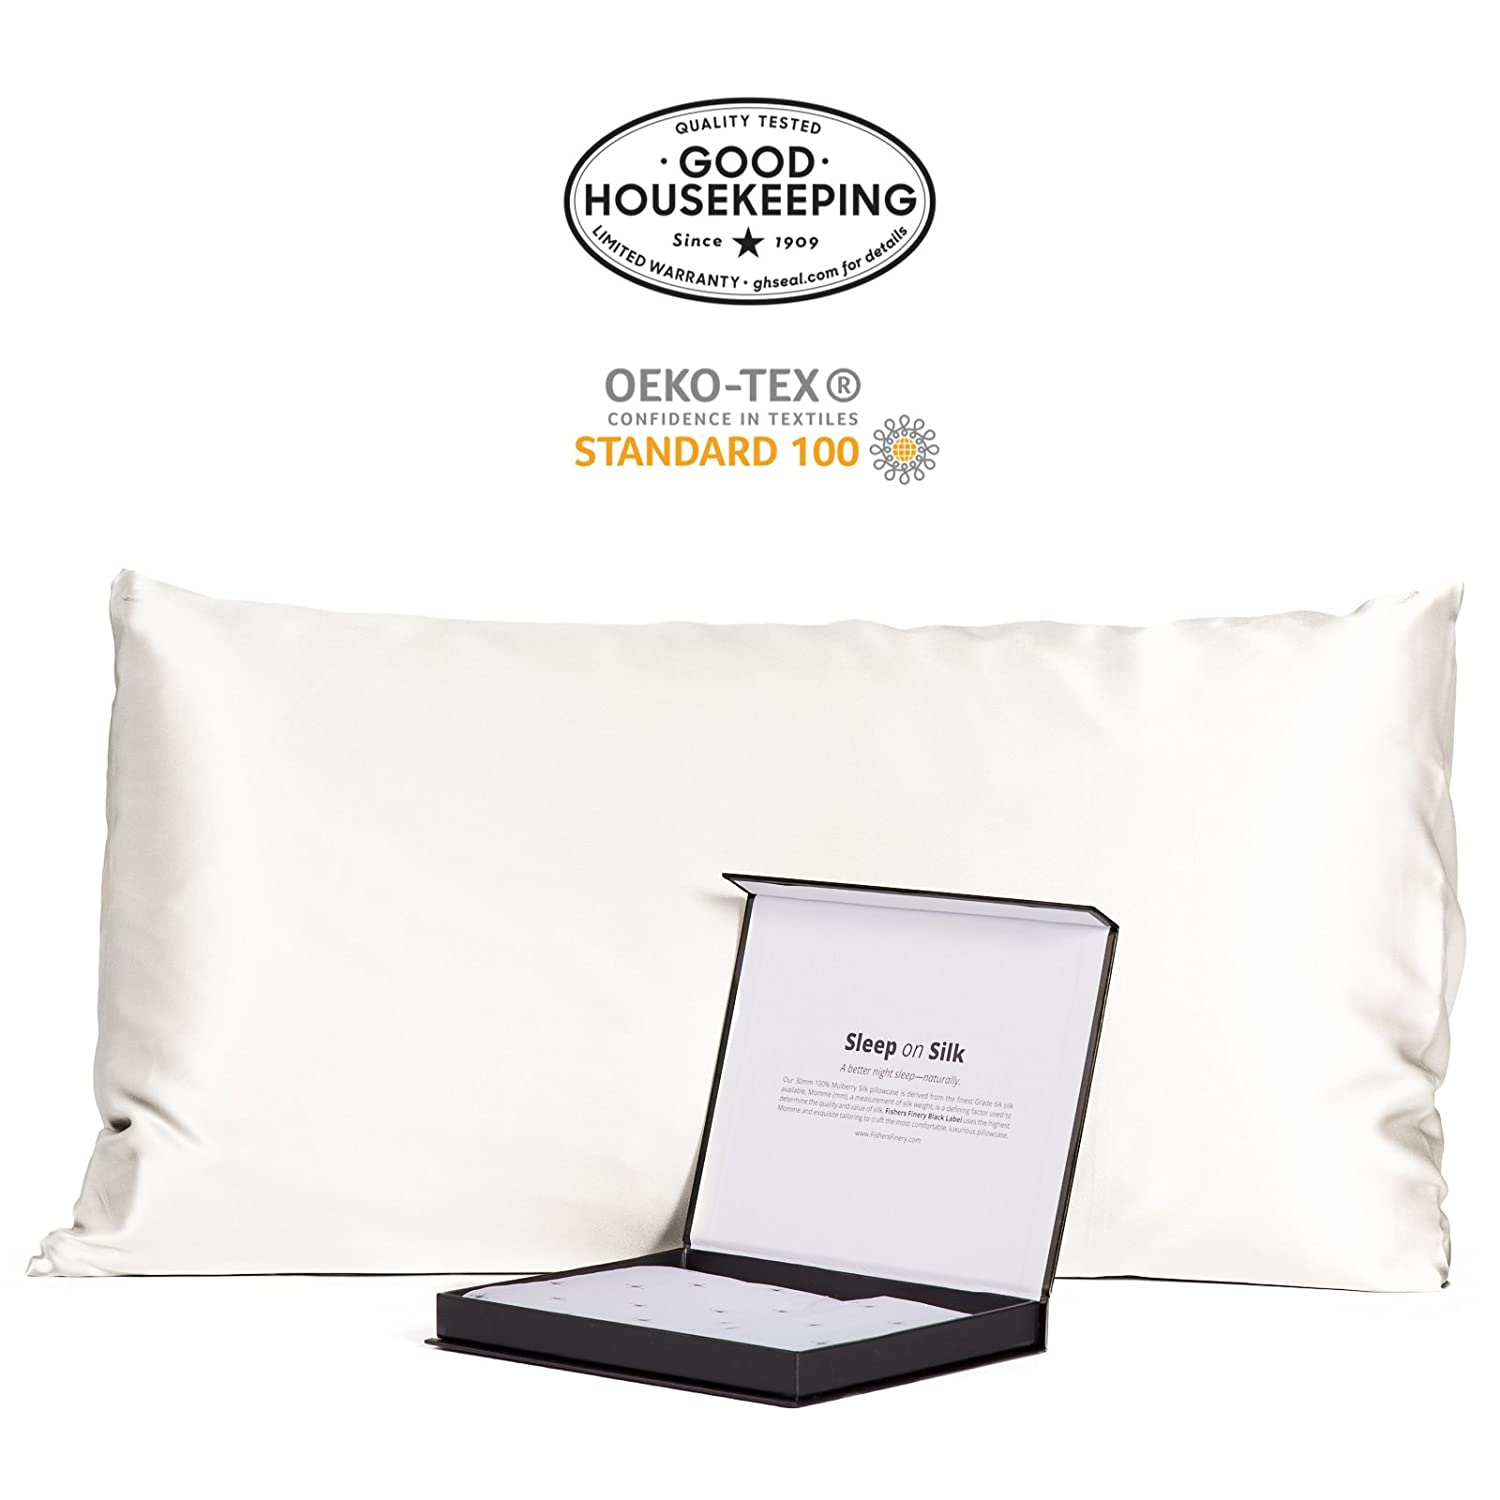 Natural White (Undyed) King (20  X 36 ) Fishers Finery 30mm 100% Pure Mulberry Silk Pillowcase Good Housekeeping Quality Tested (White, K)